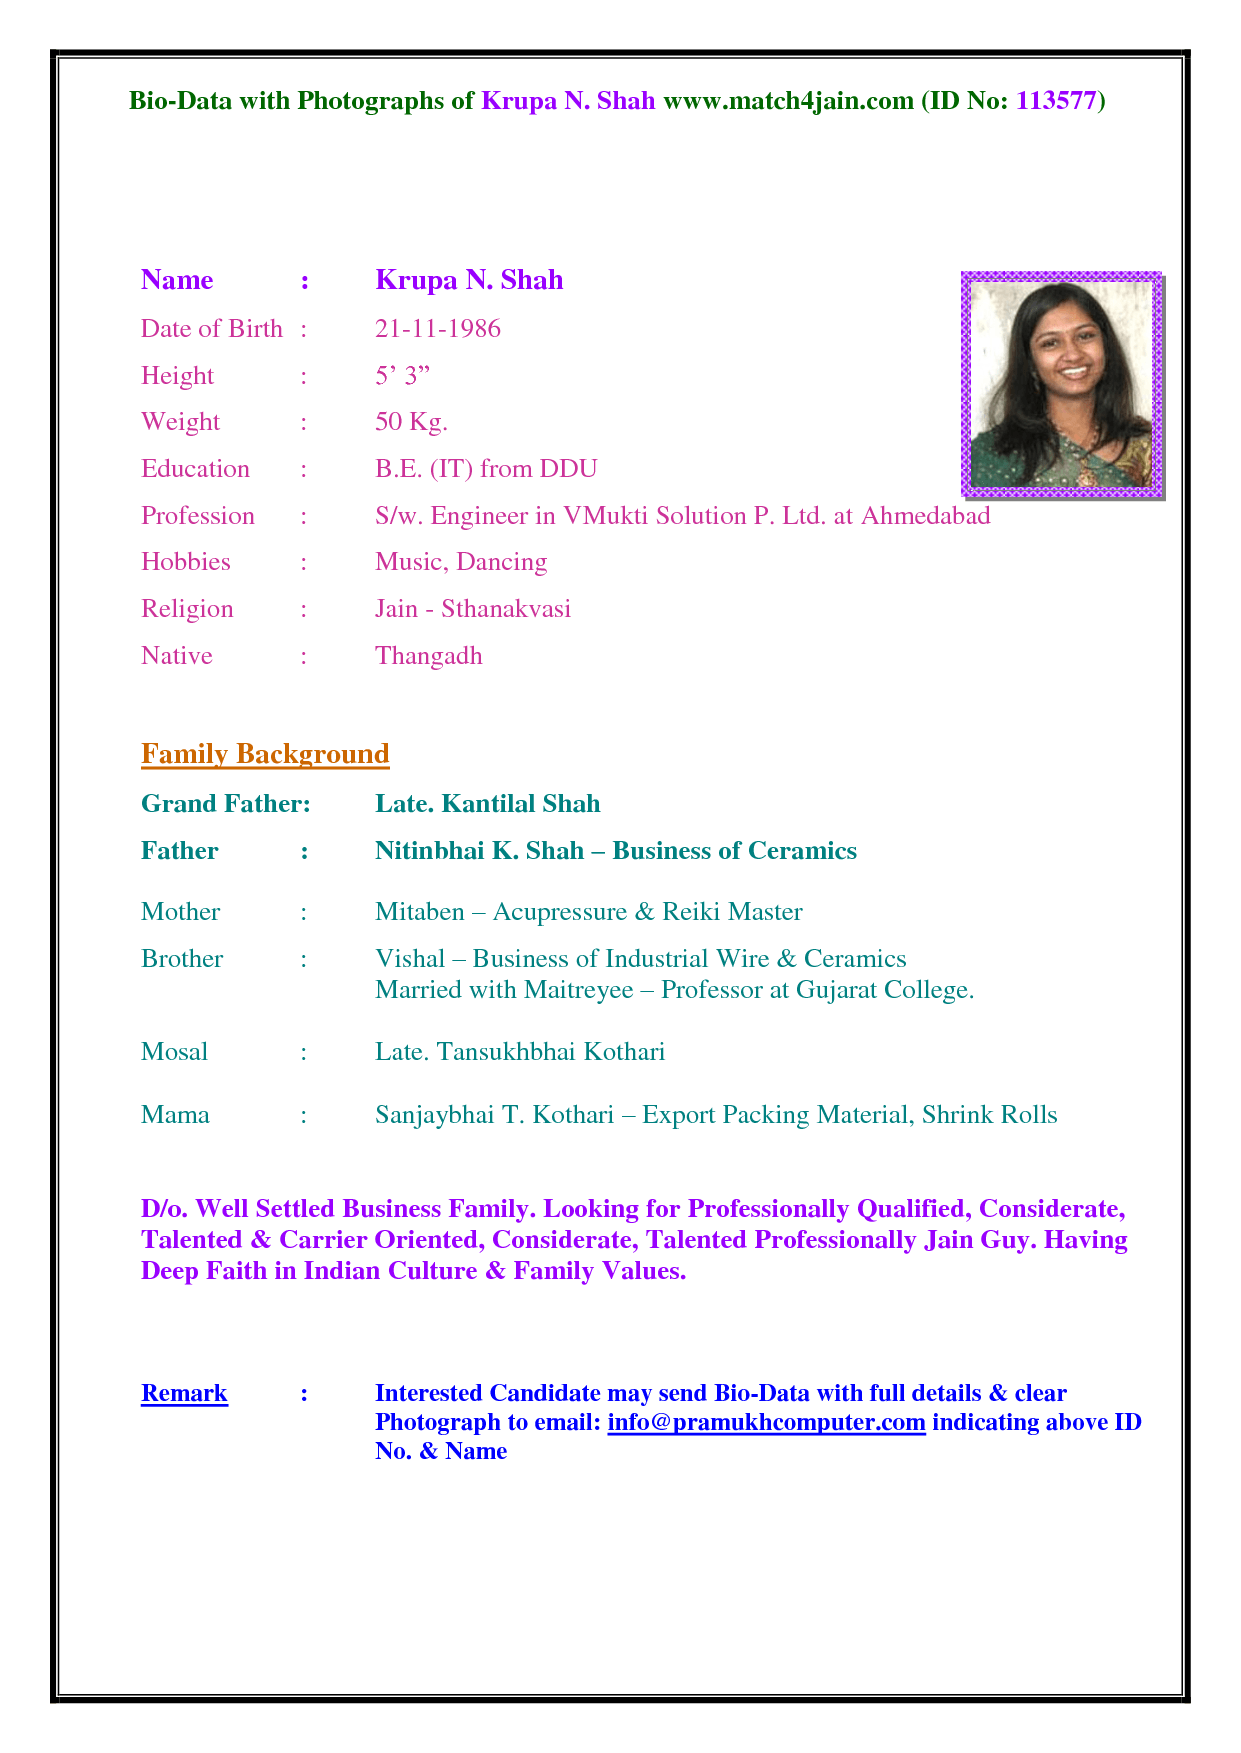 Cv format doc for marriage biodata format scribd check the below cv format doc for marriage biodata format scribd check the below link for more formats httpaletterformat yelopaper Choice Image